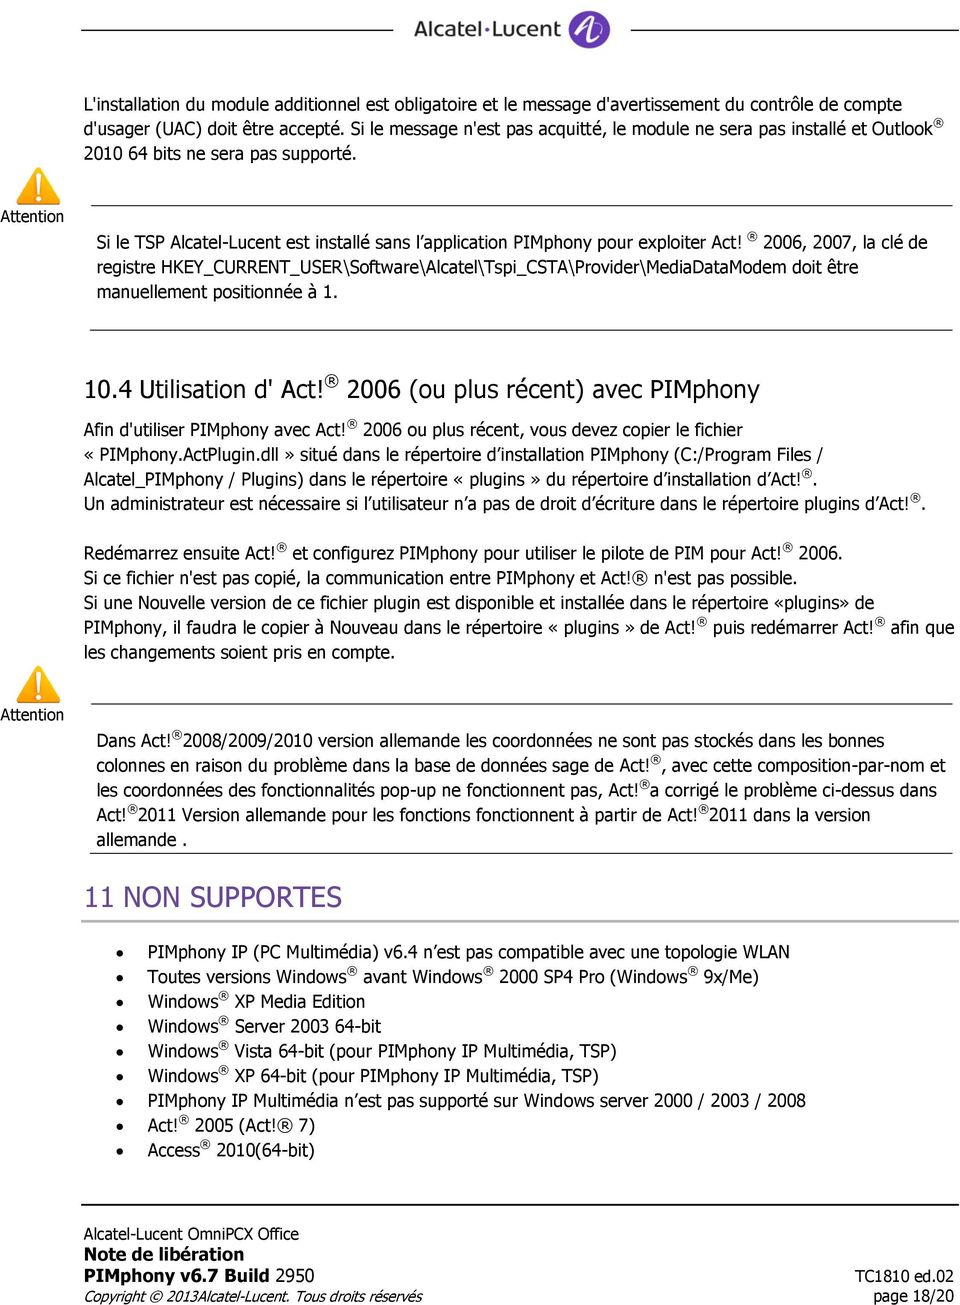 Attention Si le TSP Alcatel-Lucent est installé sans l application PIMphony pour exploiter Act!